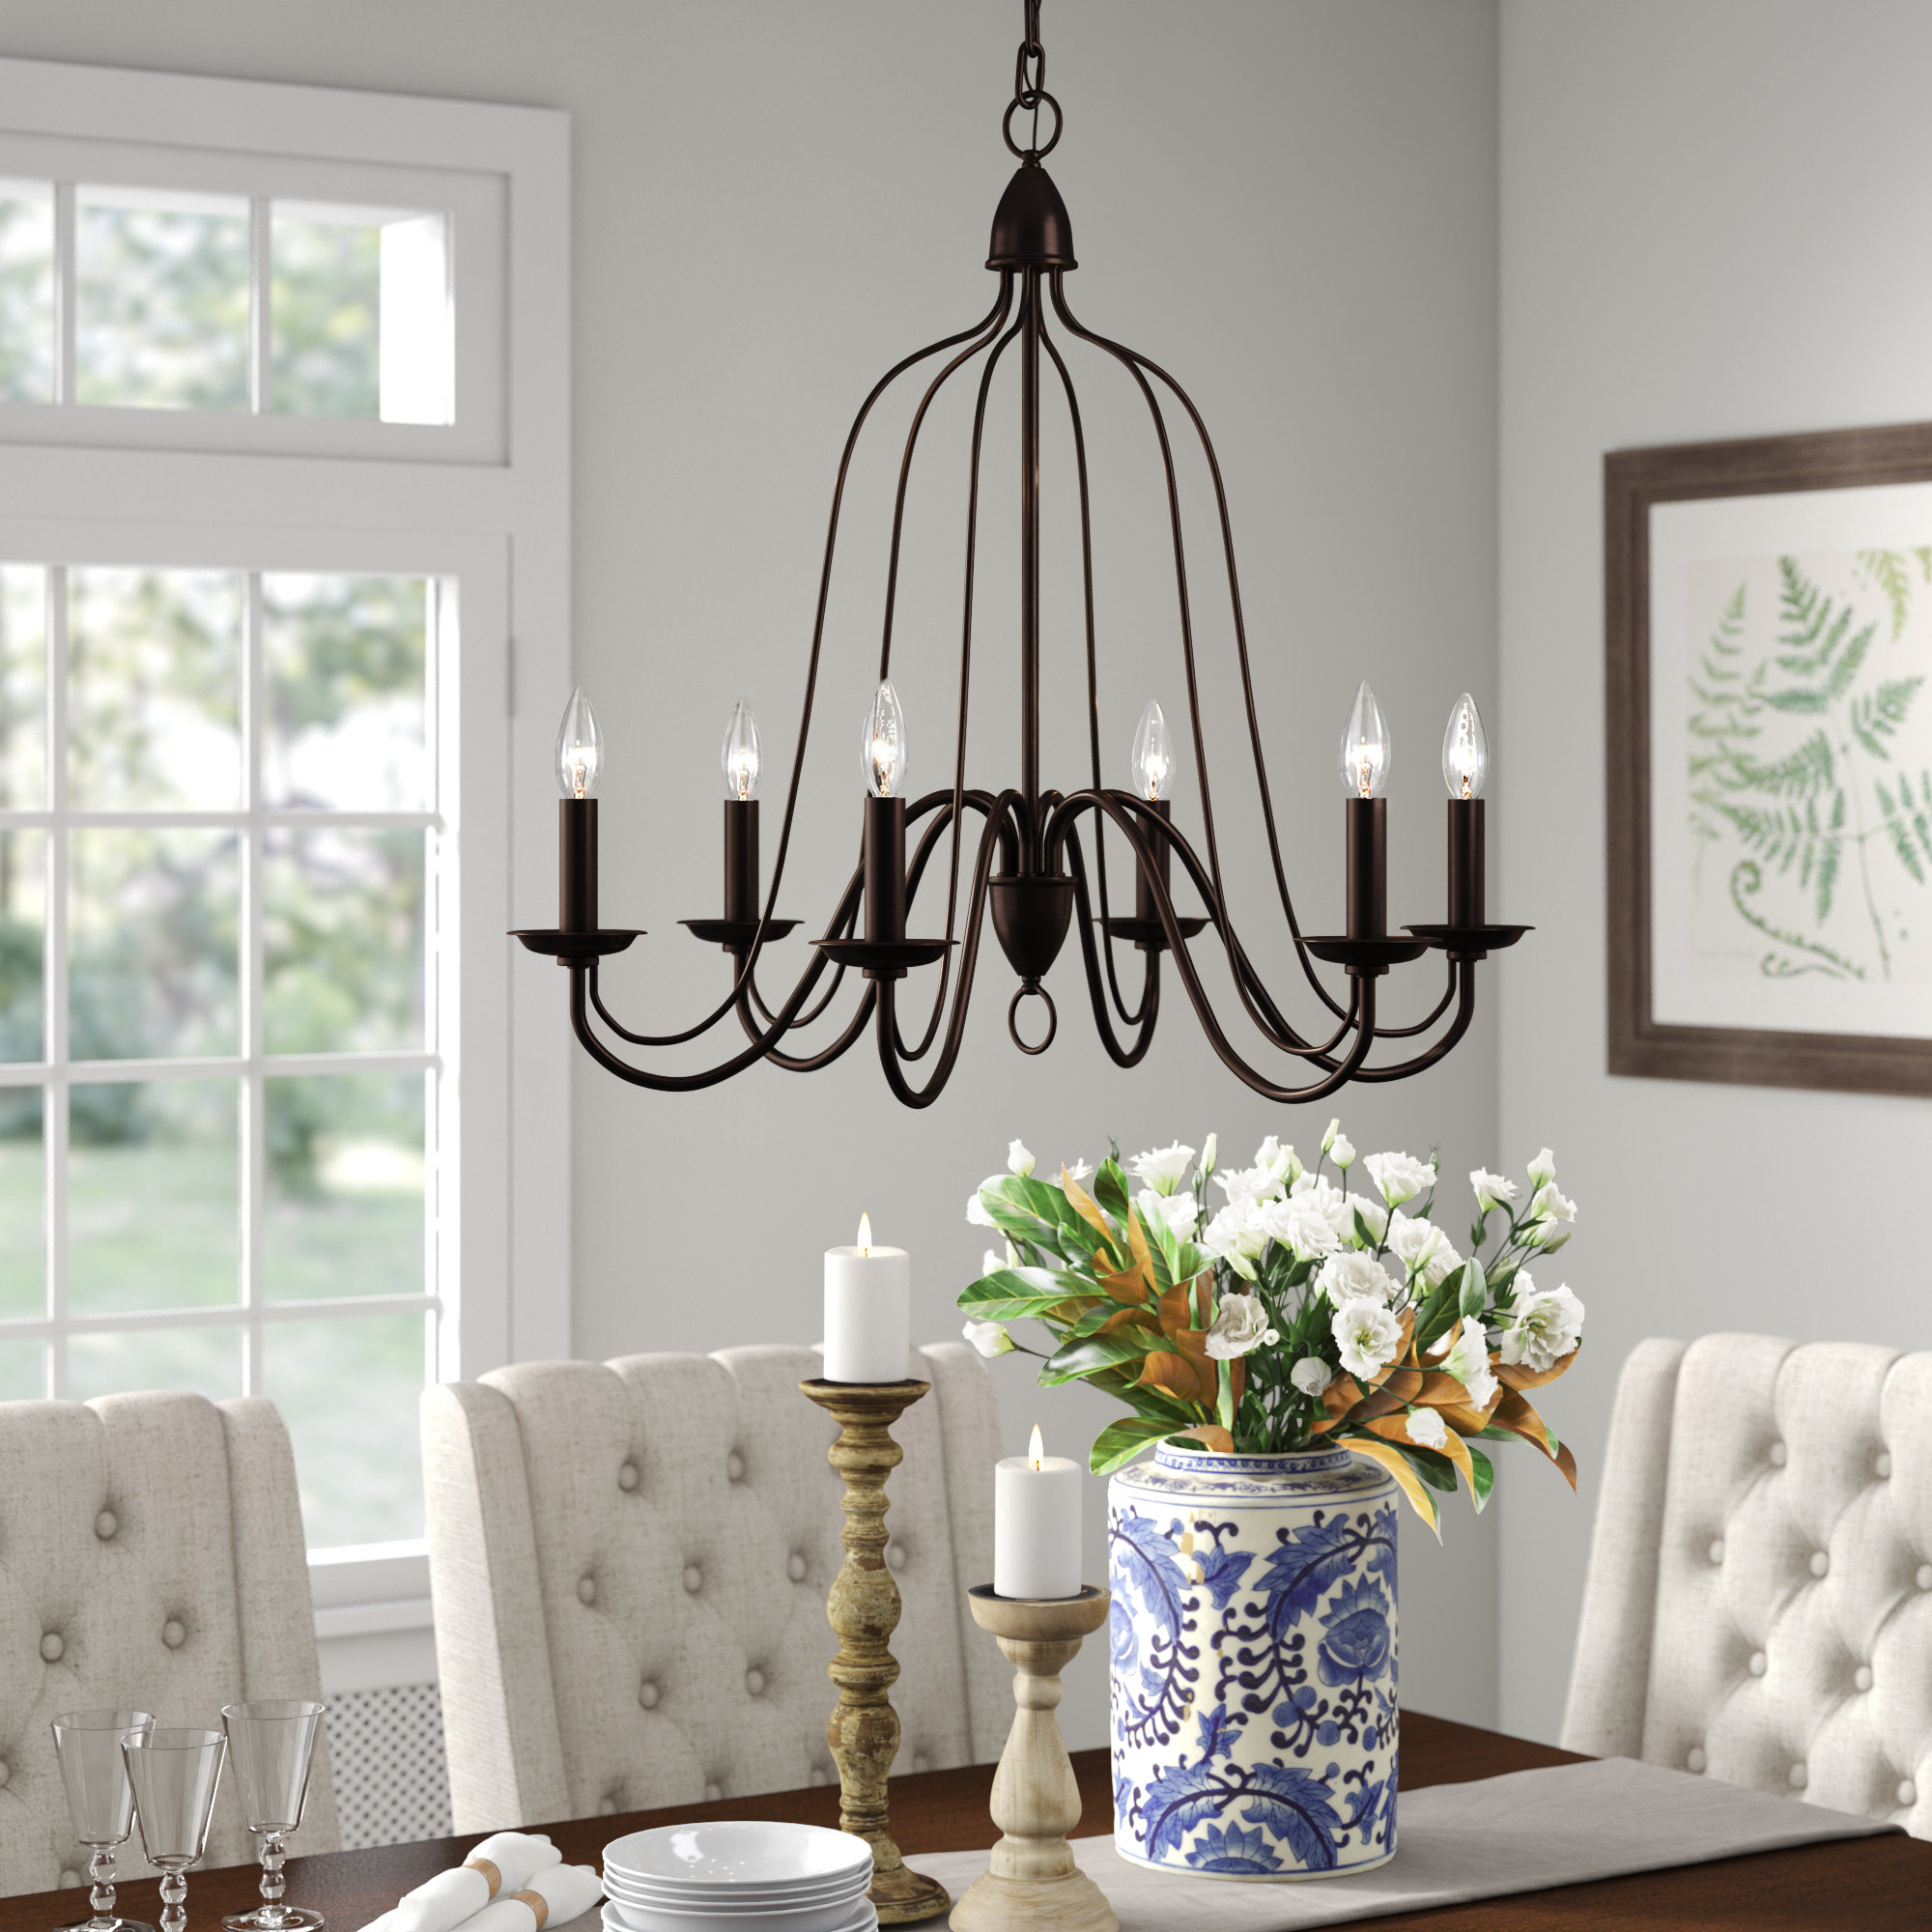 Hatfield 6 Light Candle Style Chandelier In Most Recent Watford 6 Light Candle Style Chandeliers (Gallery 18 of 20)